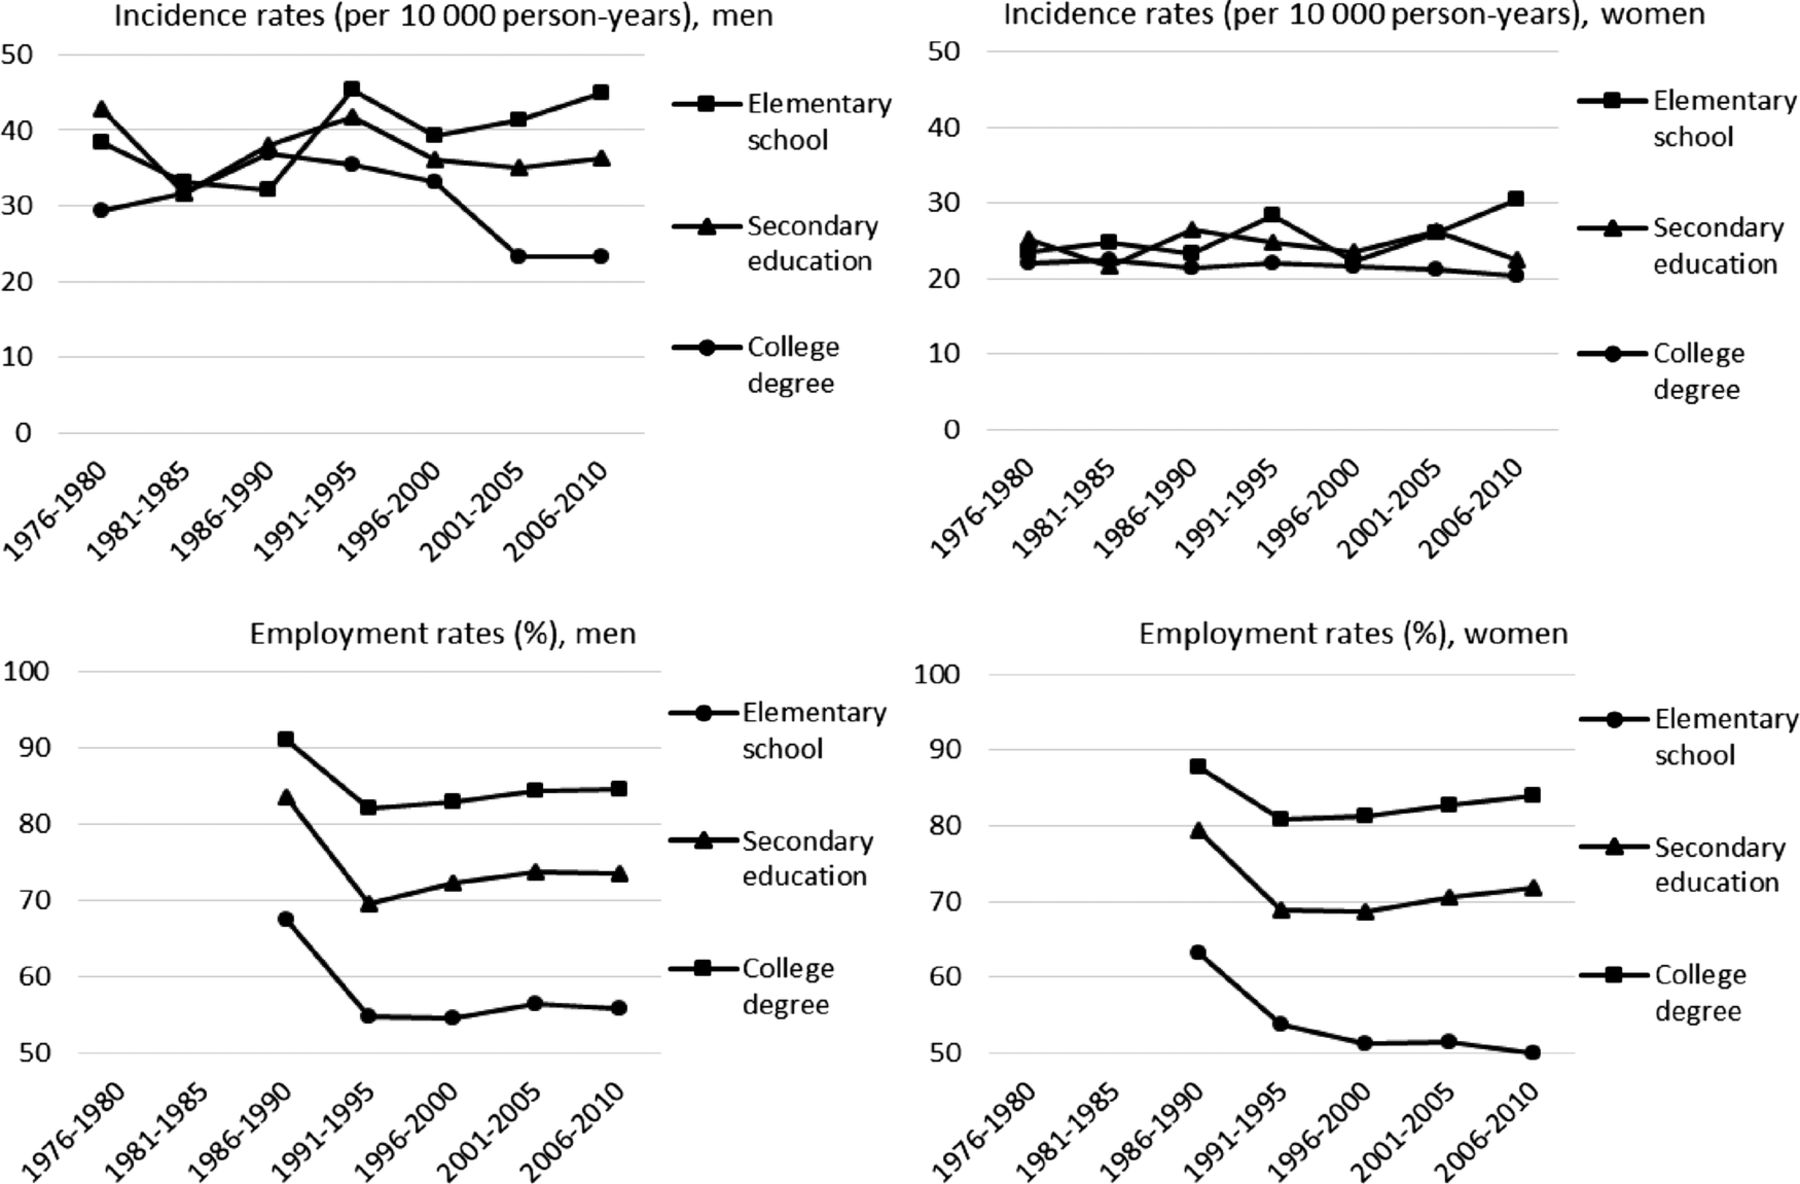 Welfare state retrenchment and increasing mental health inequality